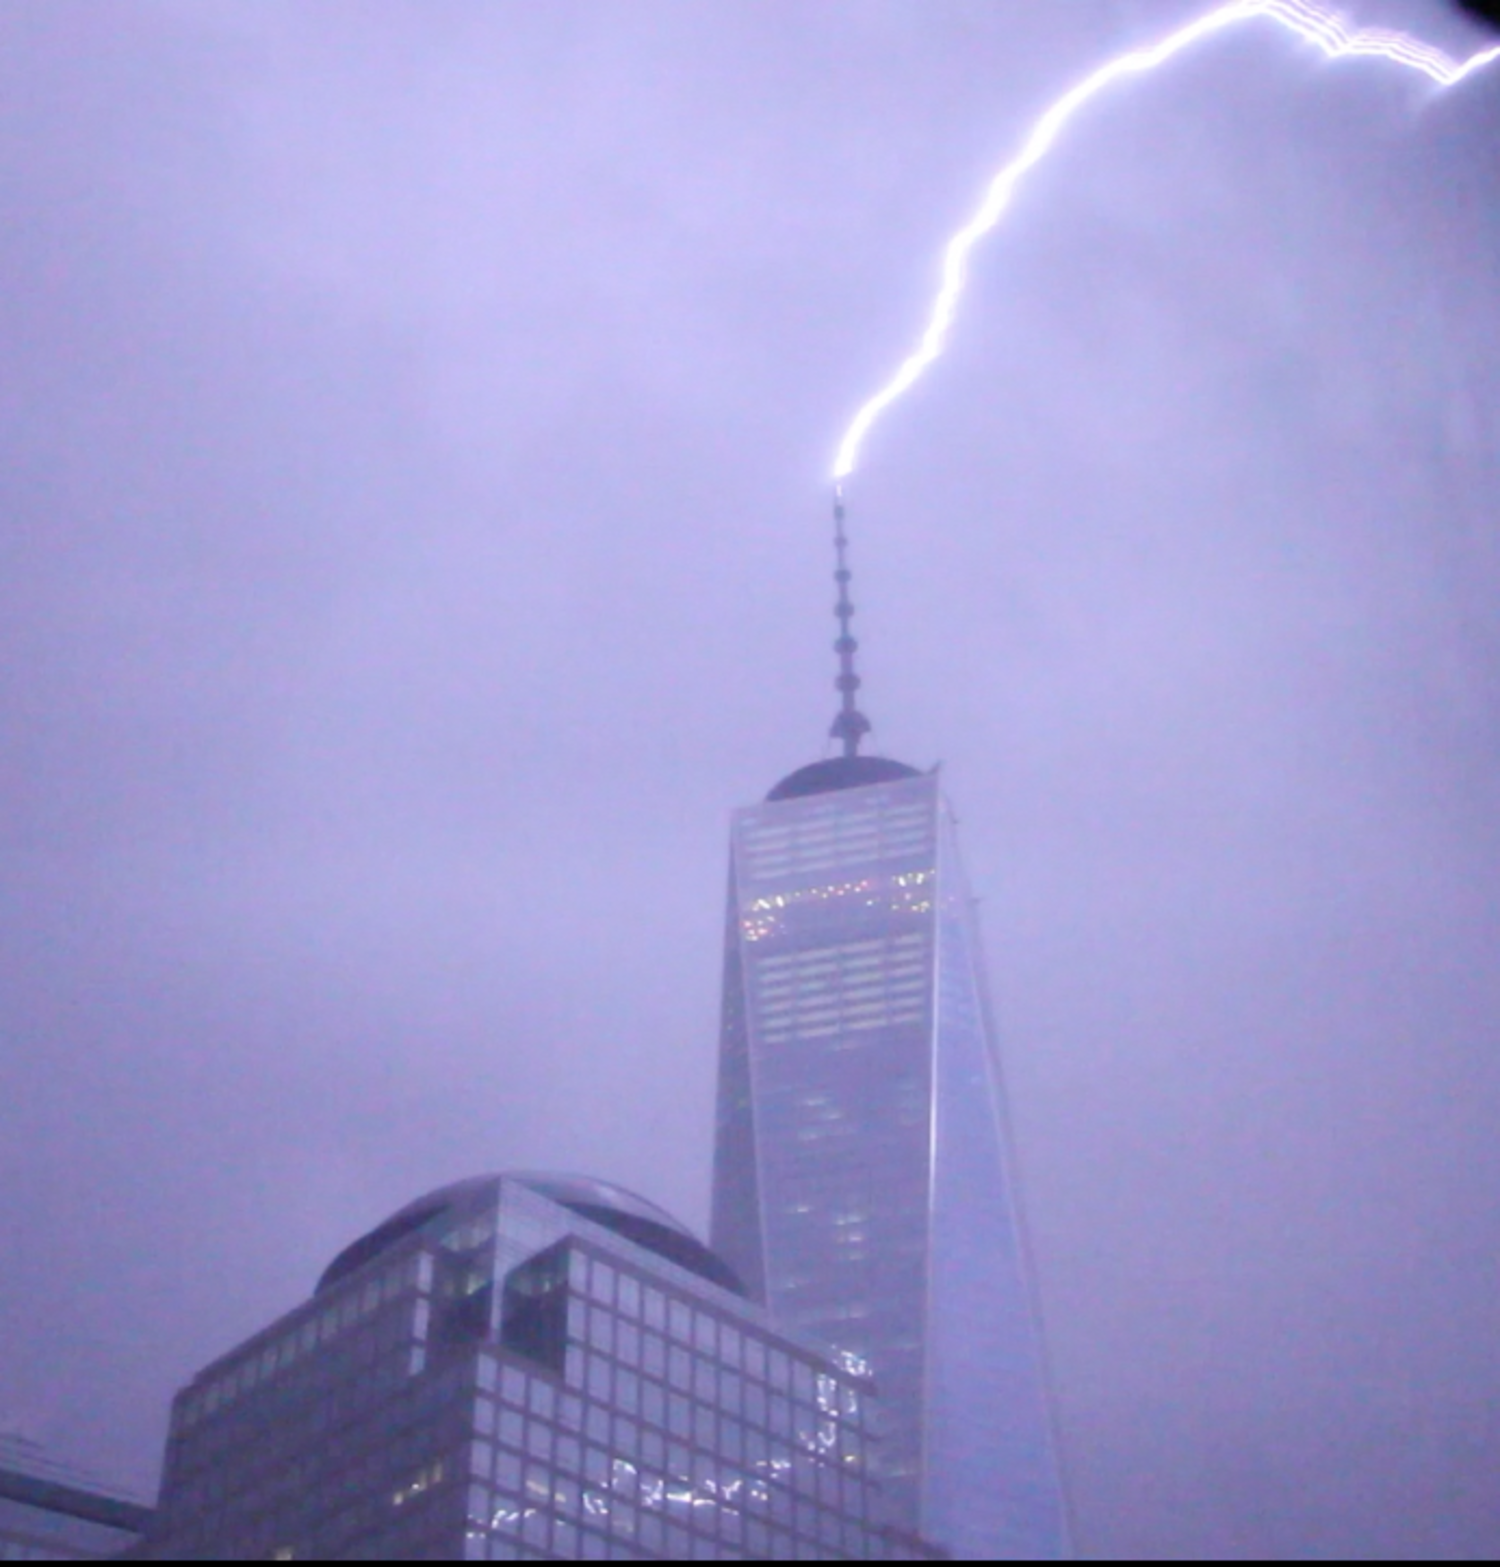 Capturing 2 lightning strikes early this morning at One World Trade Center